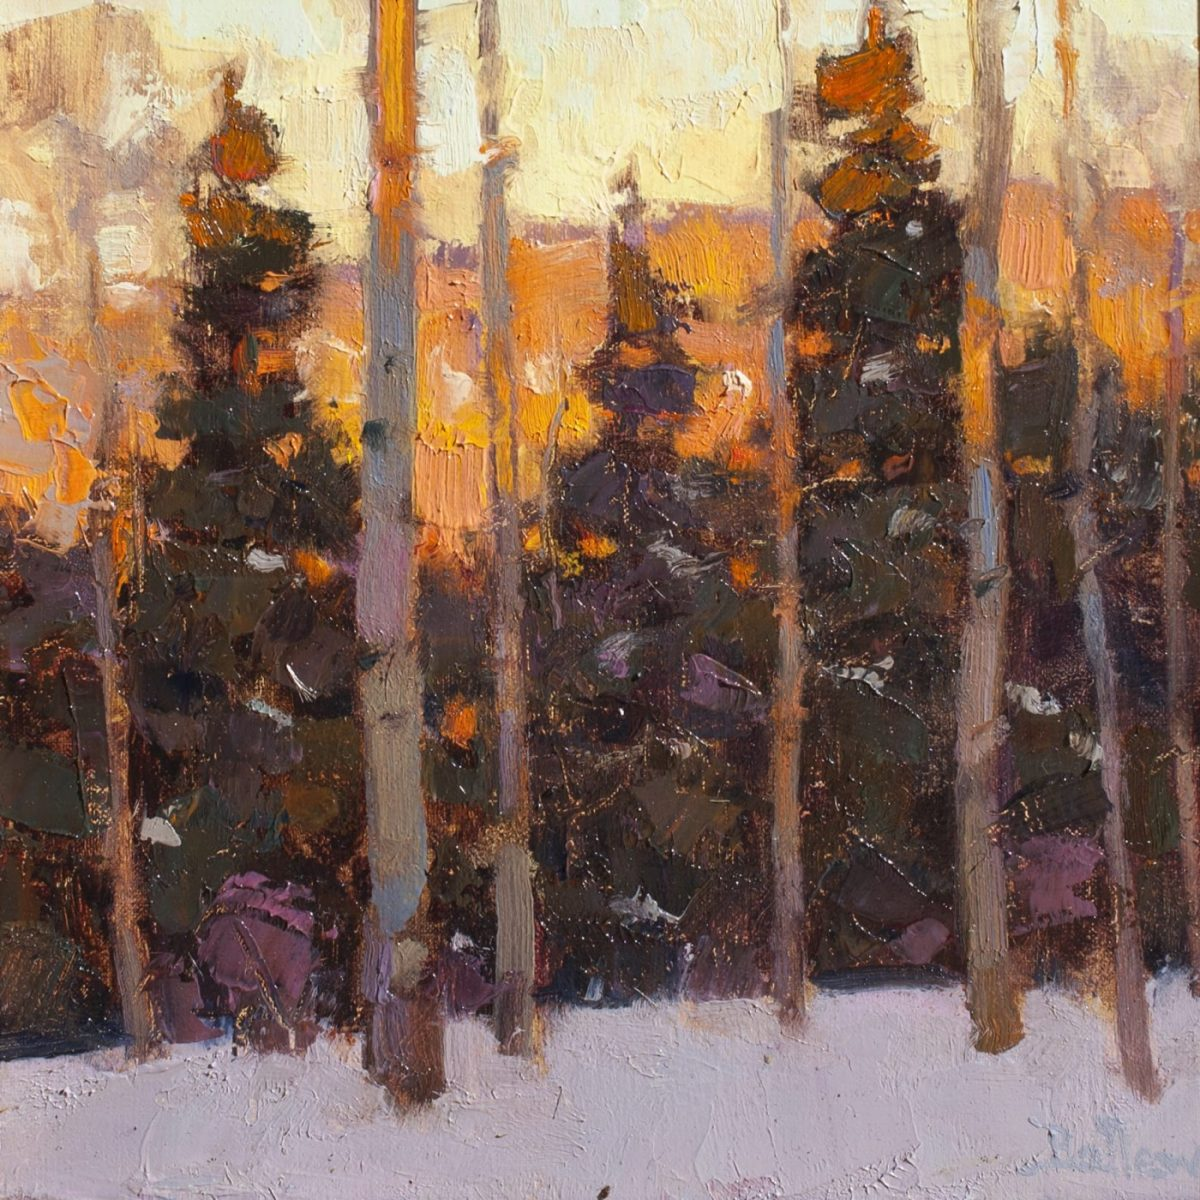 Alpenglow painting by artist David Ballew